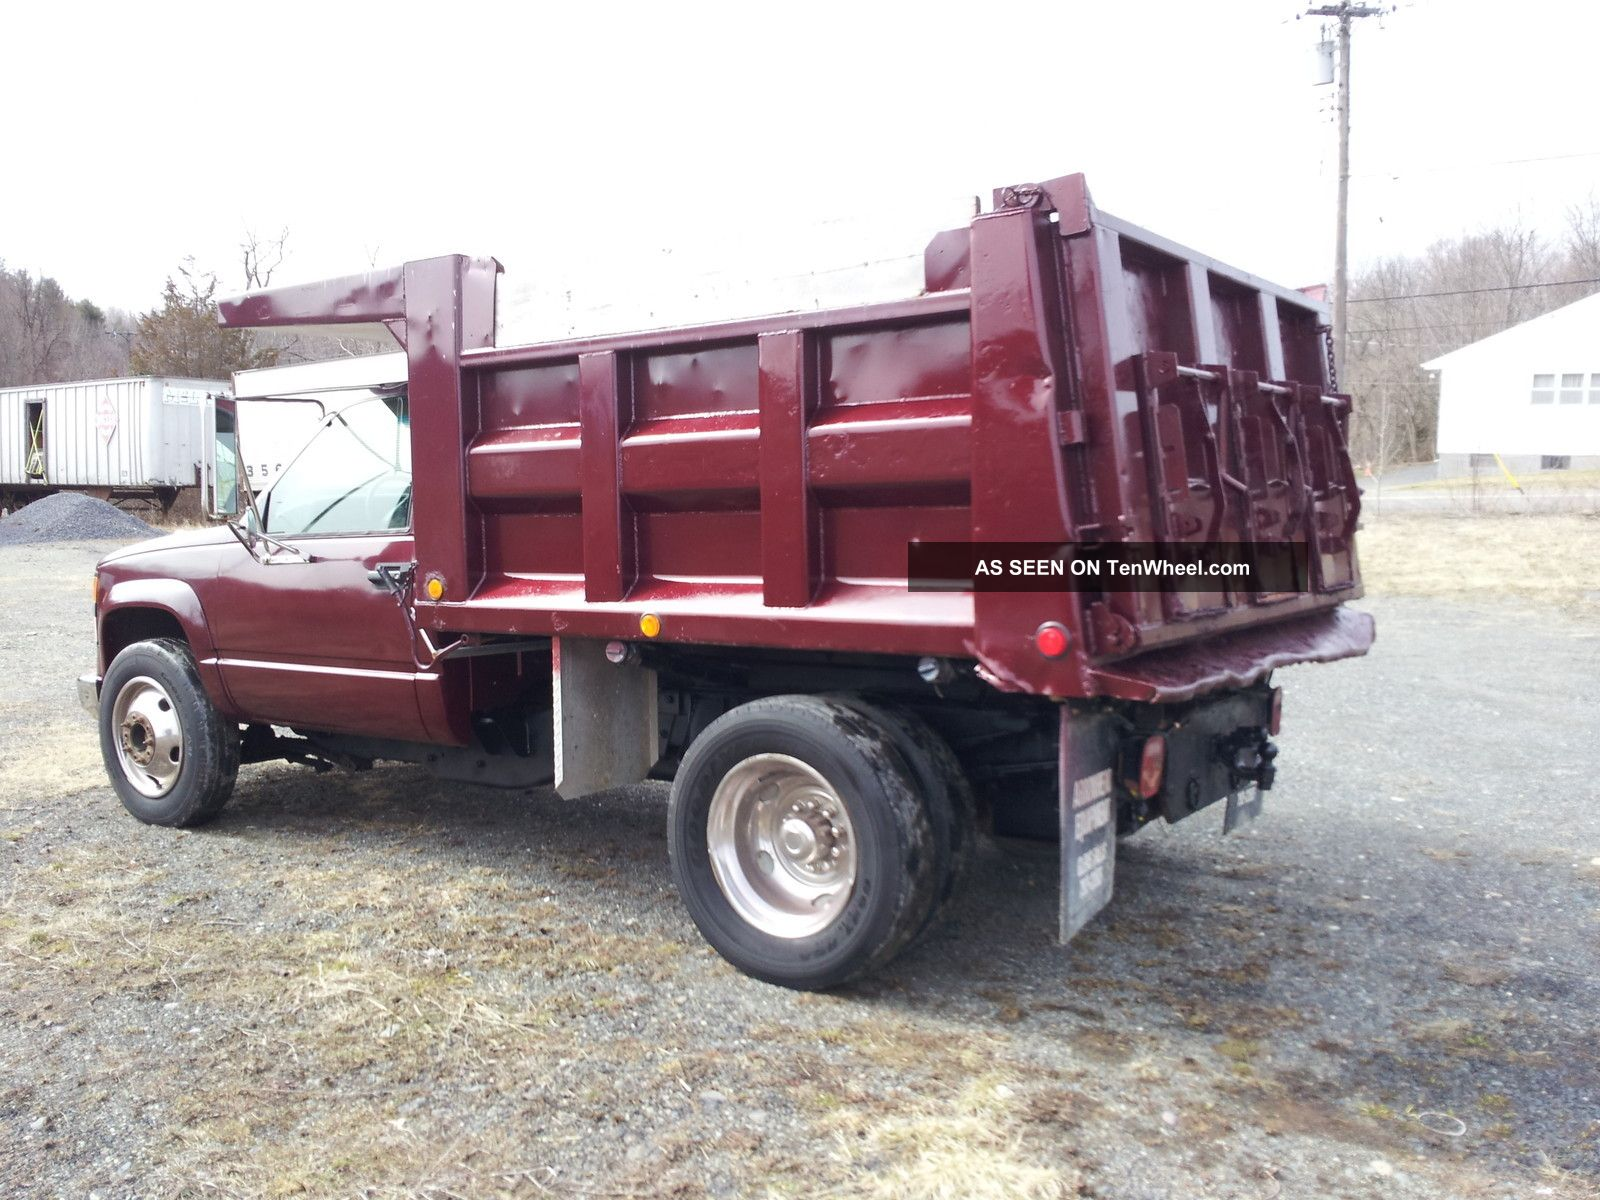 Alfa img showing gt chevrolet one ton dump bed dully truck